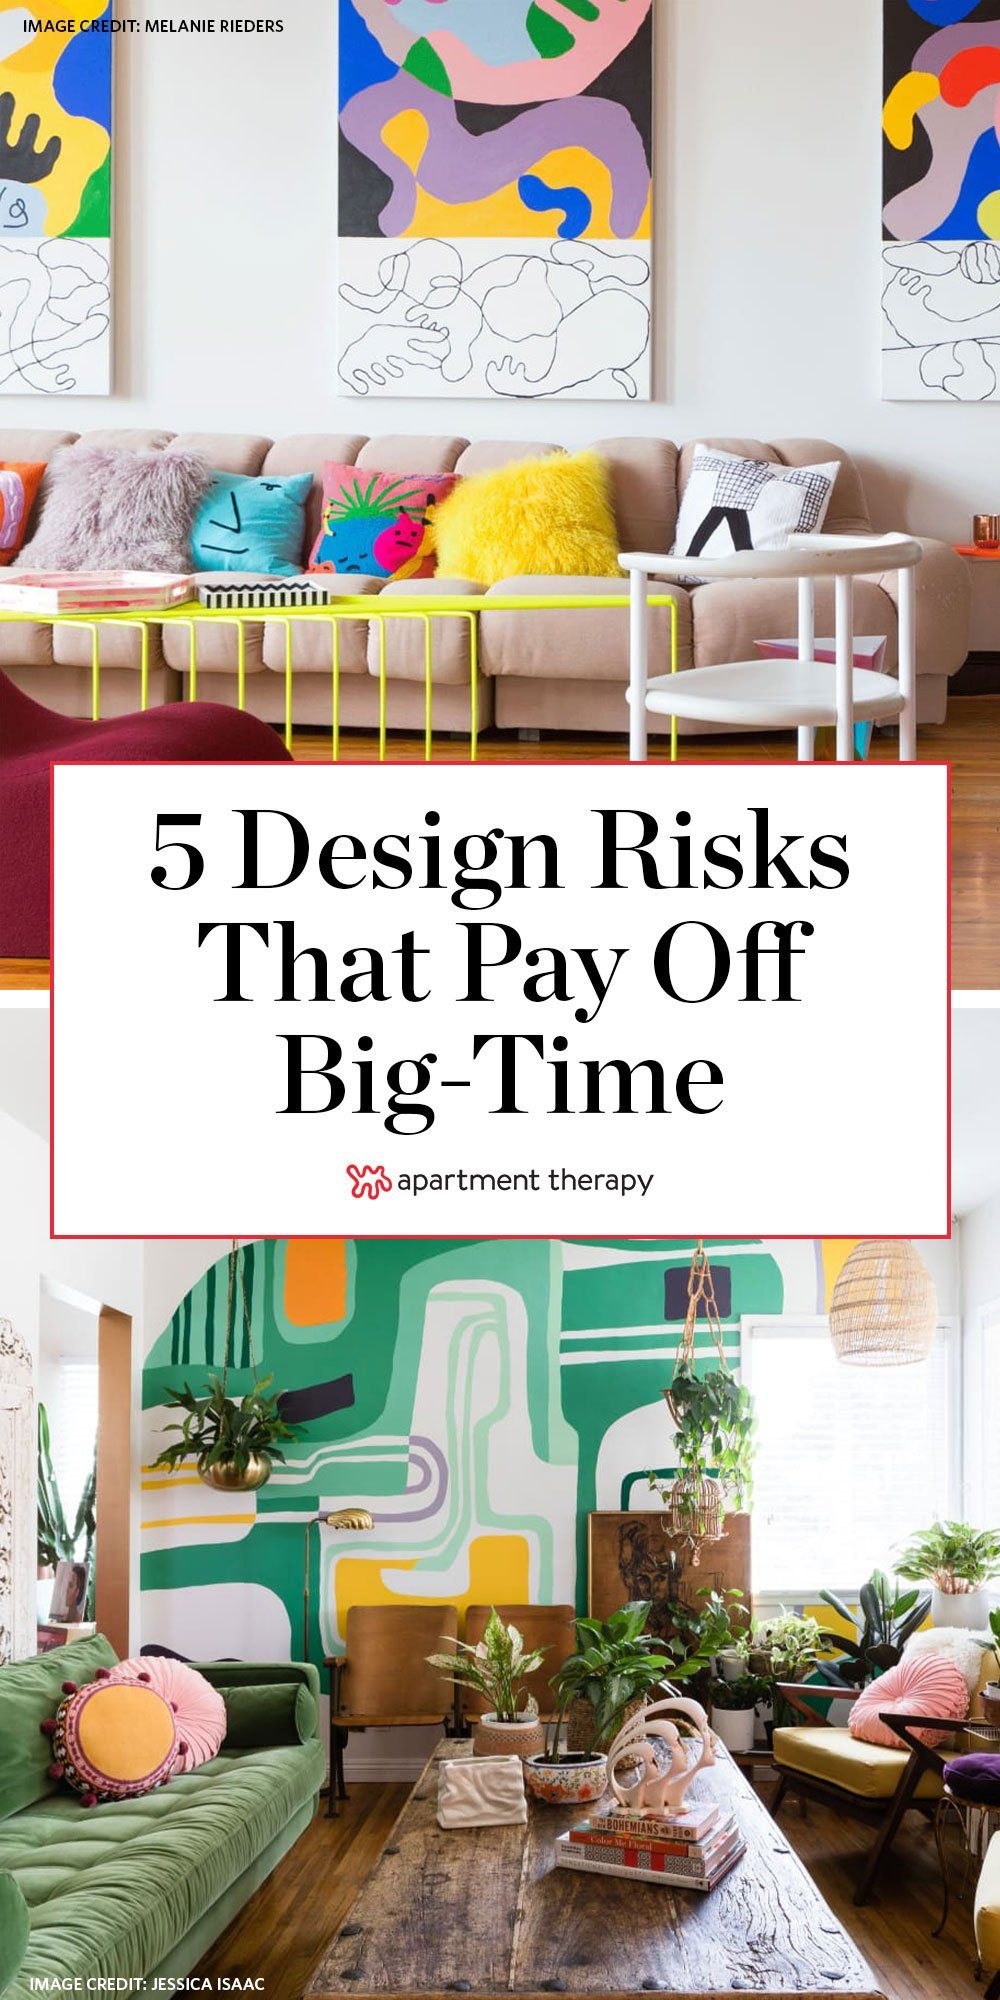 Whether with color, pattern, shape, or something else, here are five design risks that always pay off big time.  #designideas #designtrends #decortrends #colorfuldecor #maximalistdecor #livingroomideas #decorideas